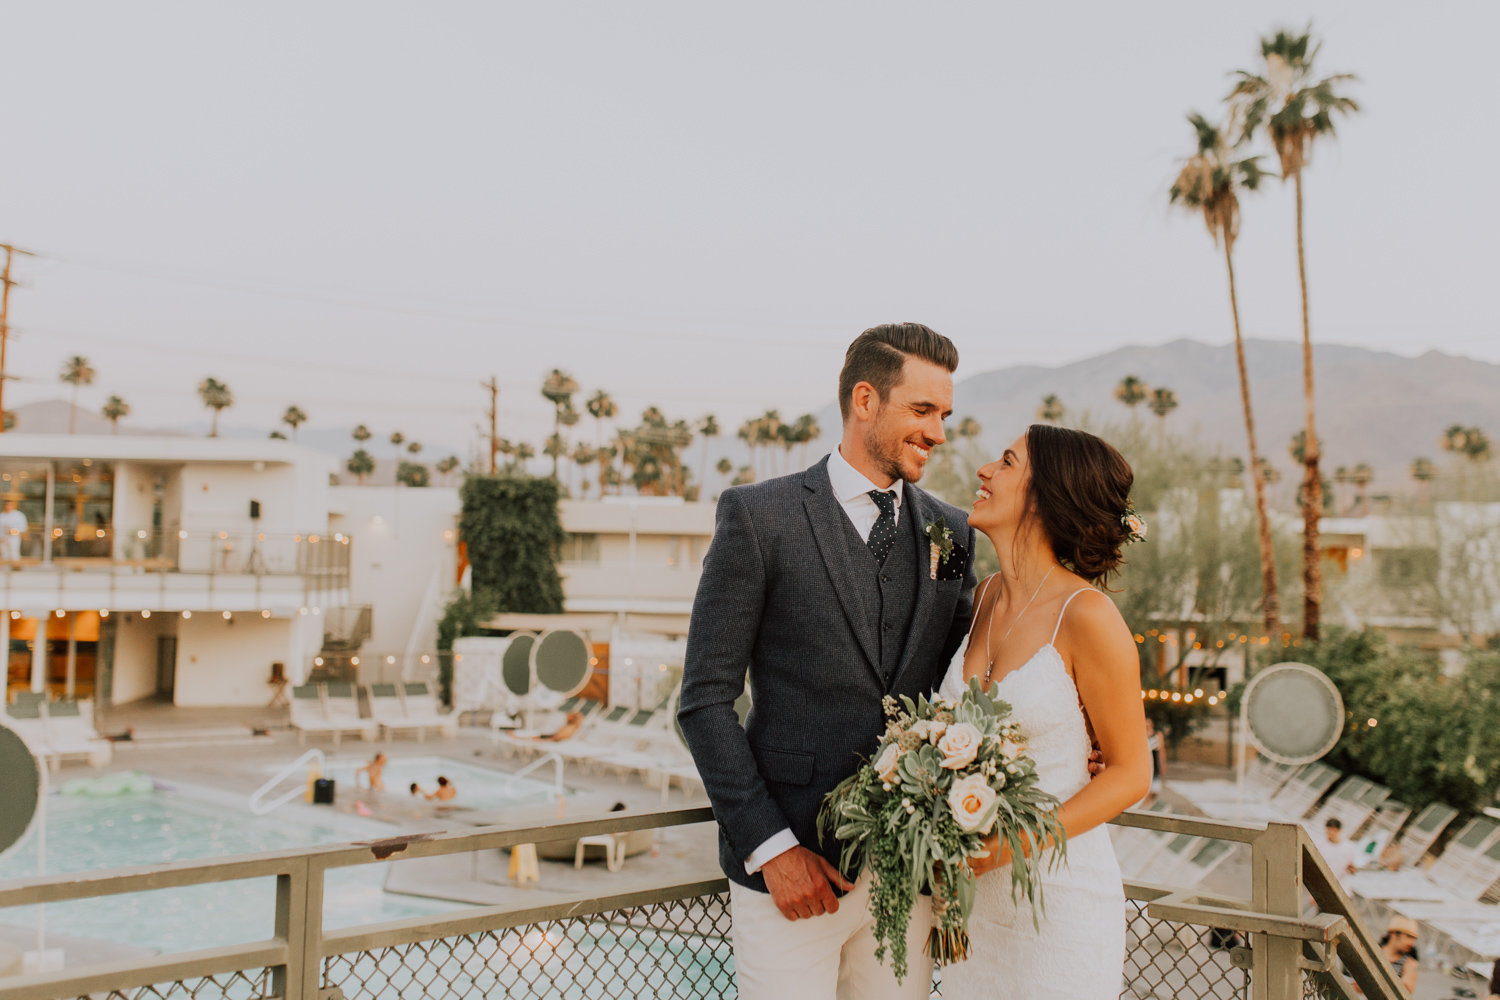 Brianna Broyles_Palm Springs Wedding Photographer_Ace Hotel Wedding_Ace Hotel Palm Springs-79